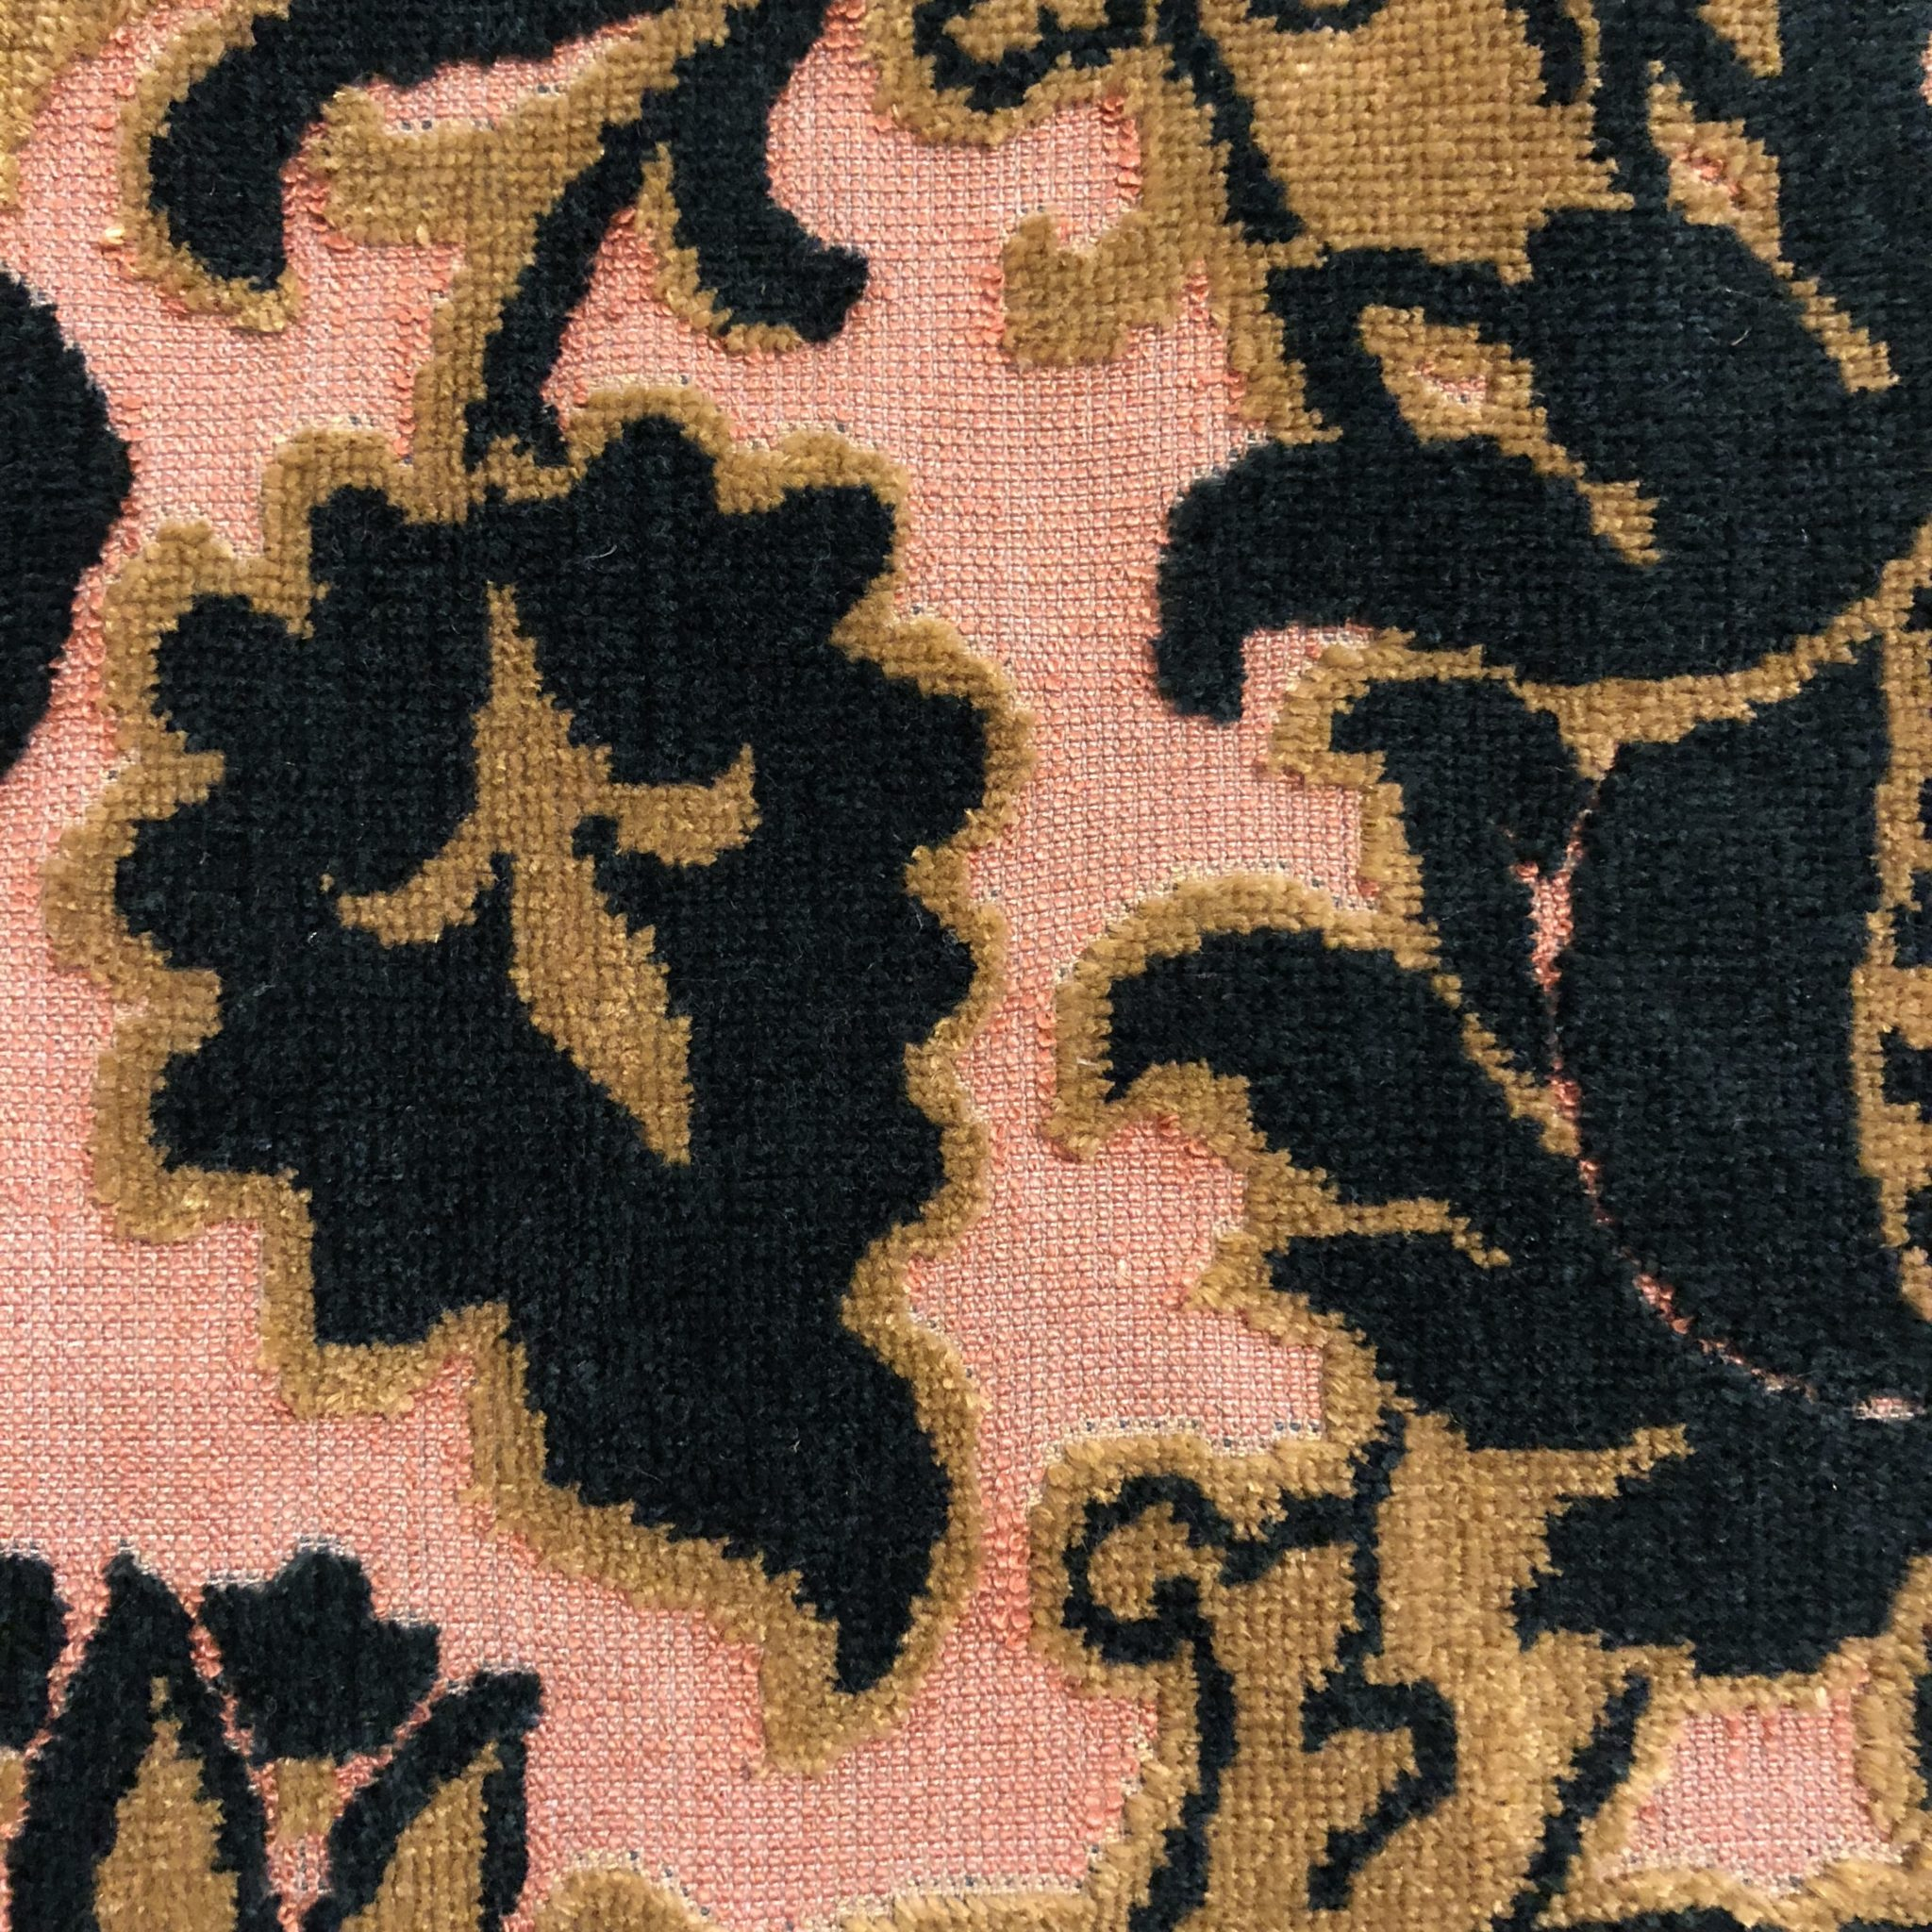 Details of Watts of Westminster fabric